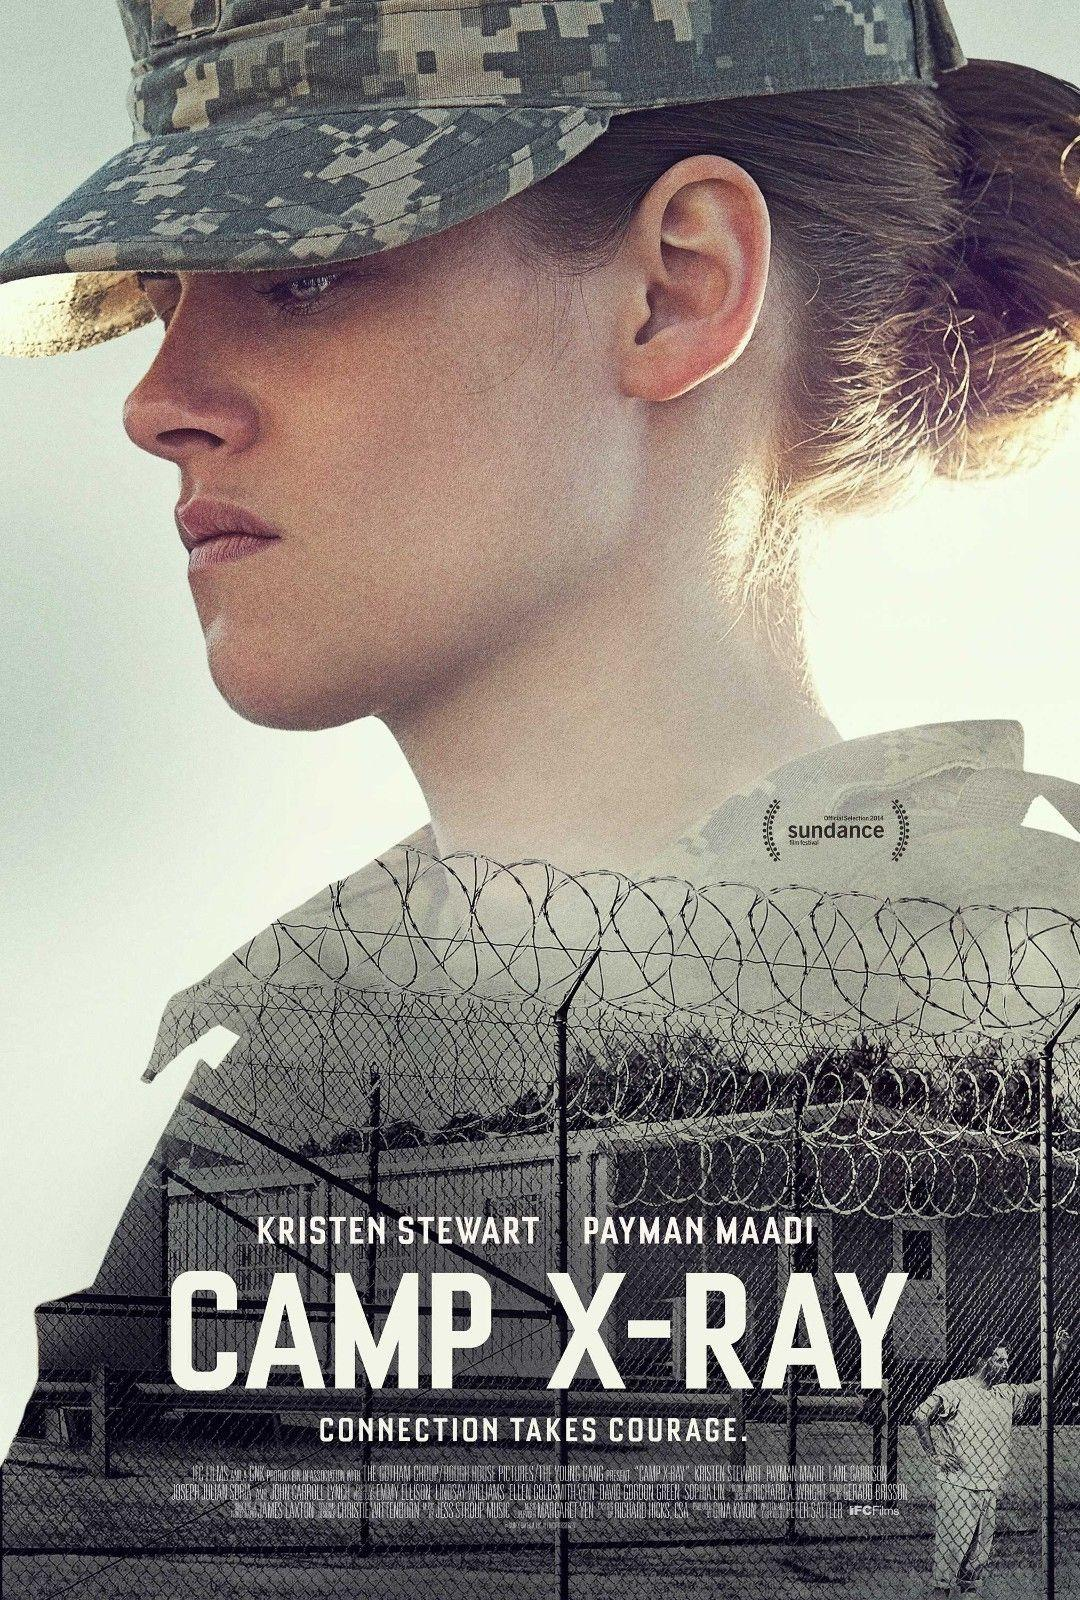 Camp X-Ray (2014) Movie Art silk furniture bar family wall decoration hot sale popular poster 56